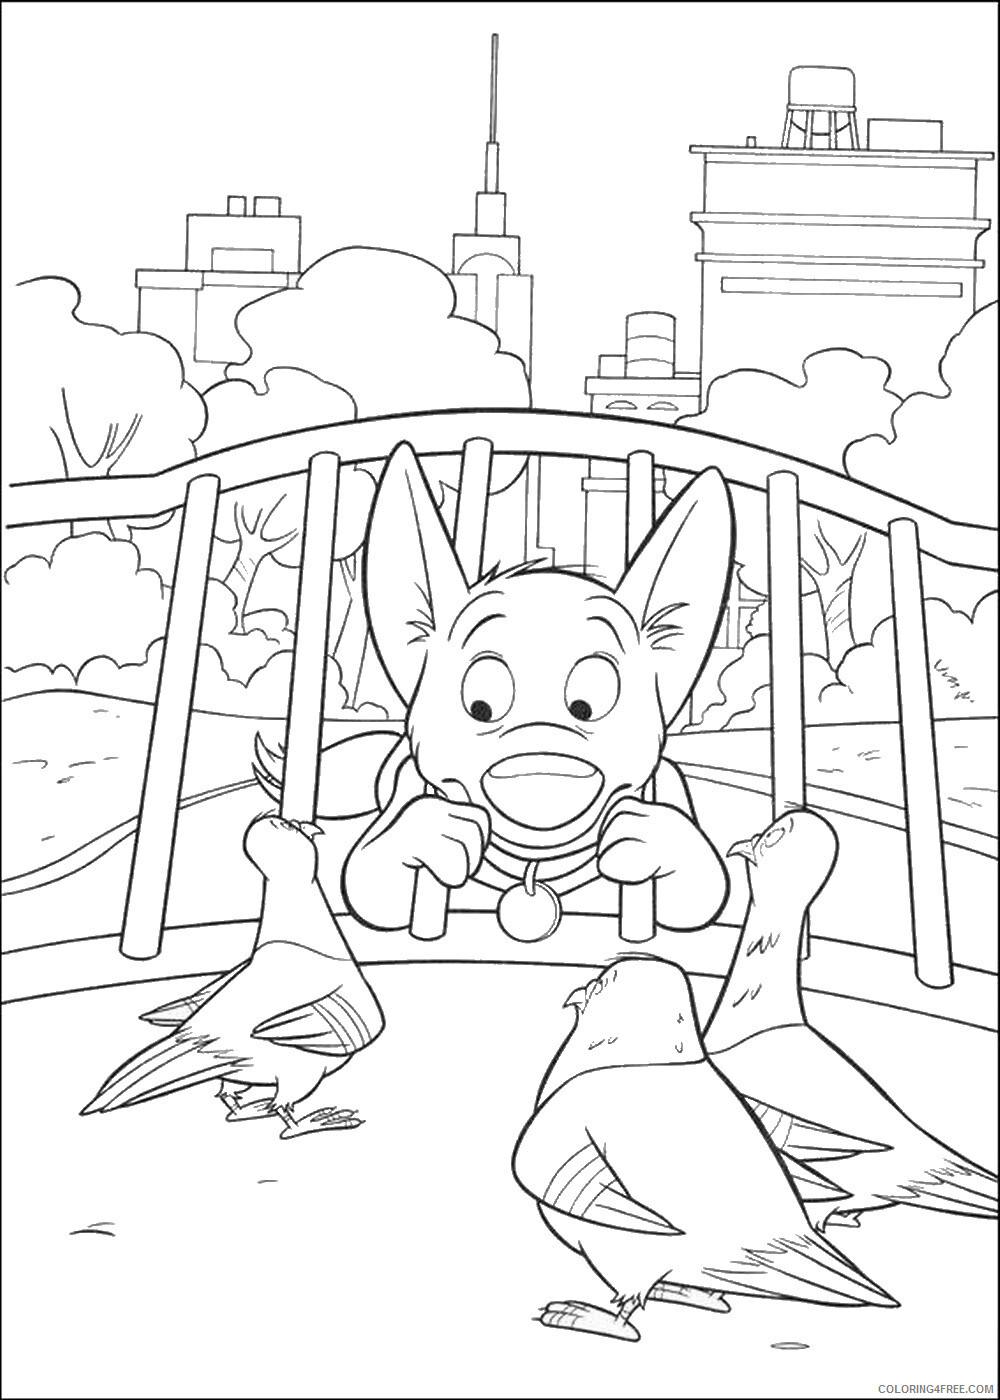 Bolt Coloring Pages TV Film bolt_cl_12 Printable 2020 01173 Coloring4free